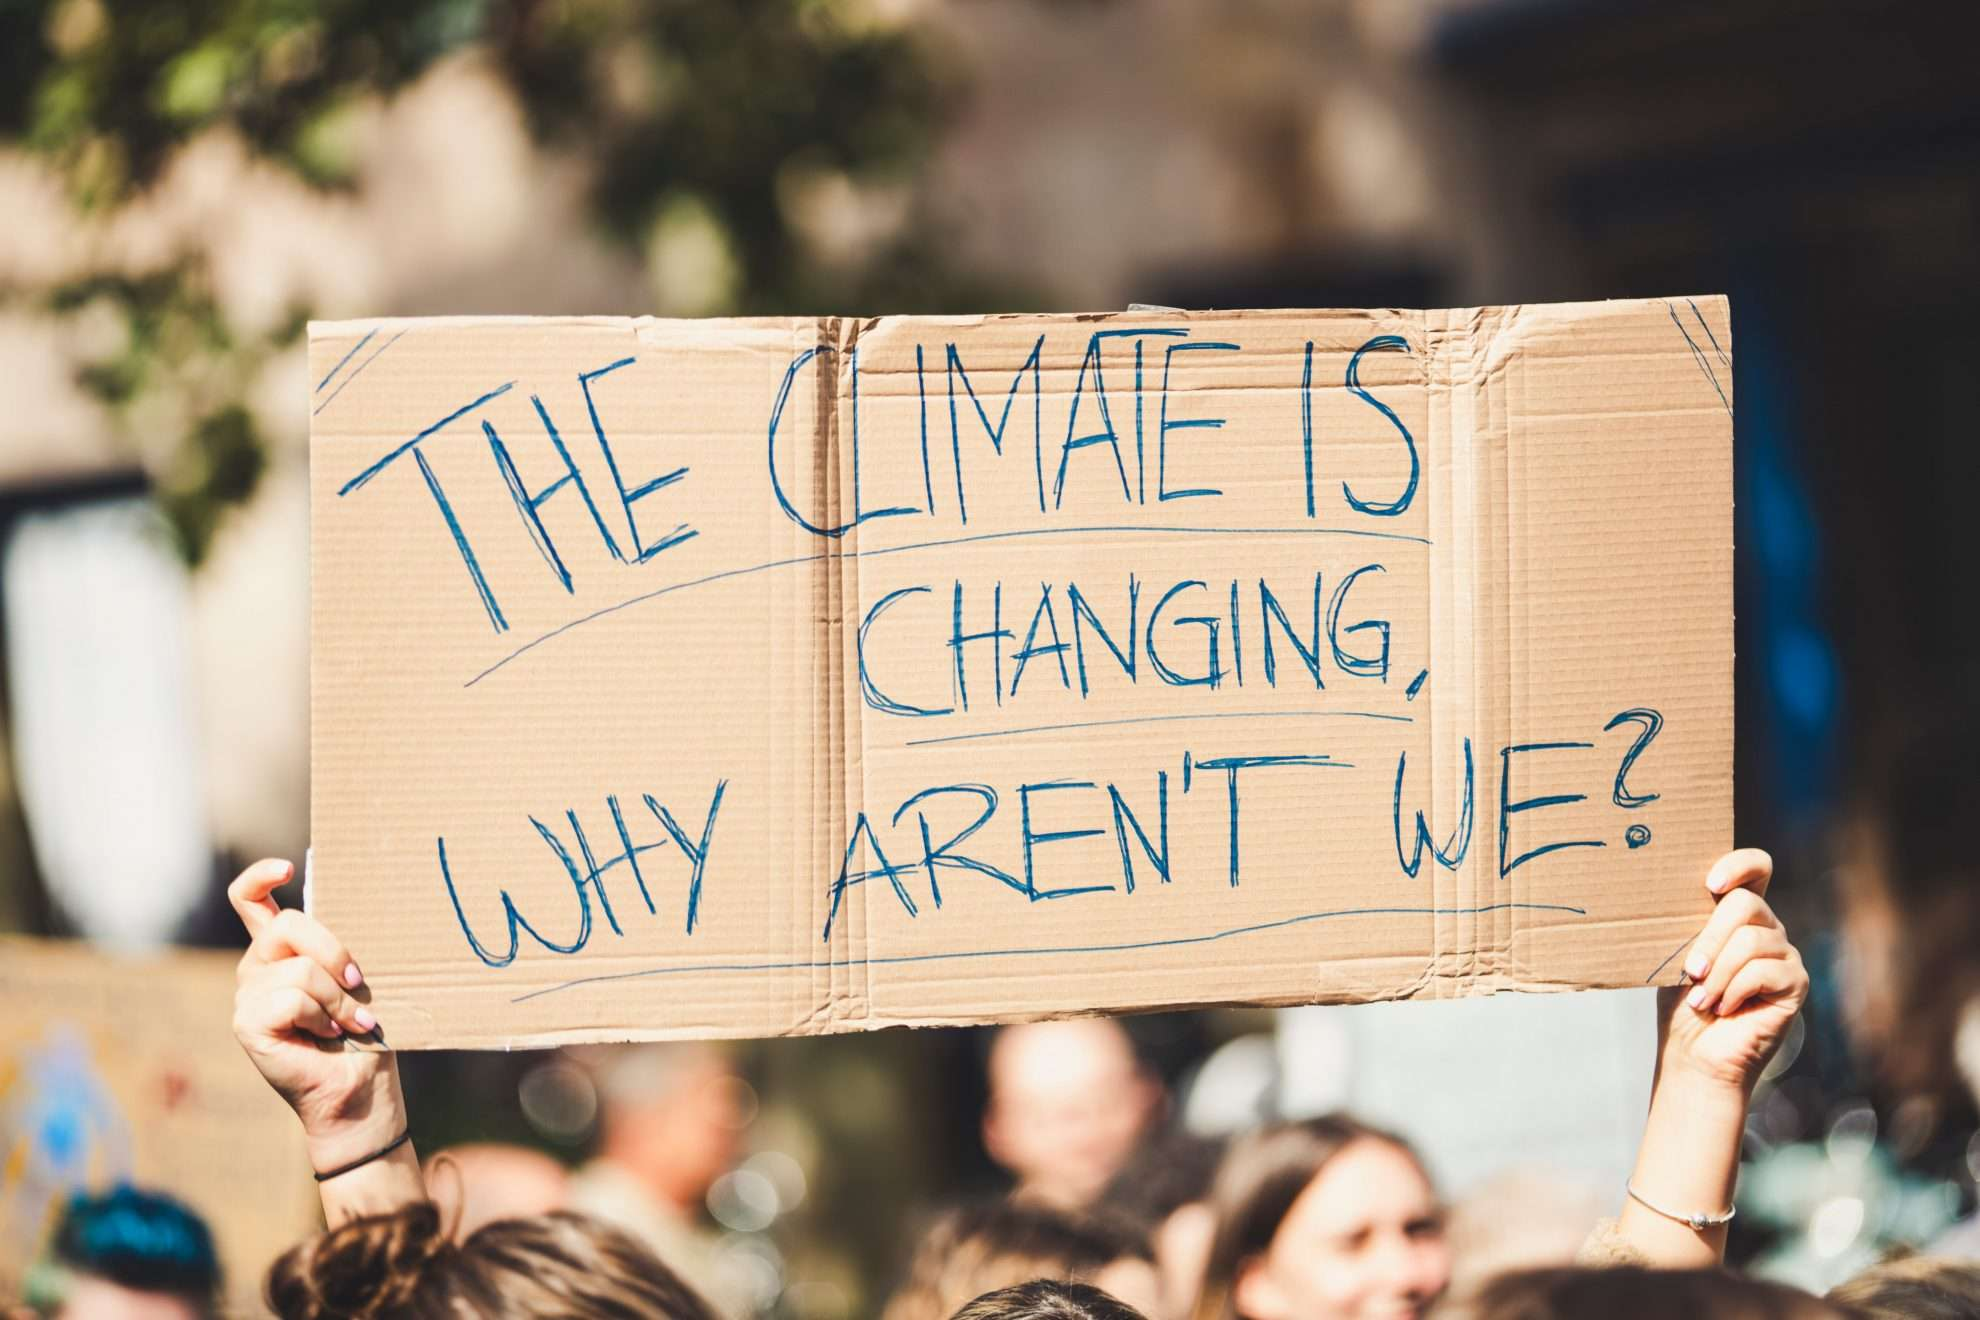 The Climate is Changing, Why Arn't We?